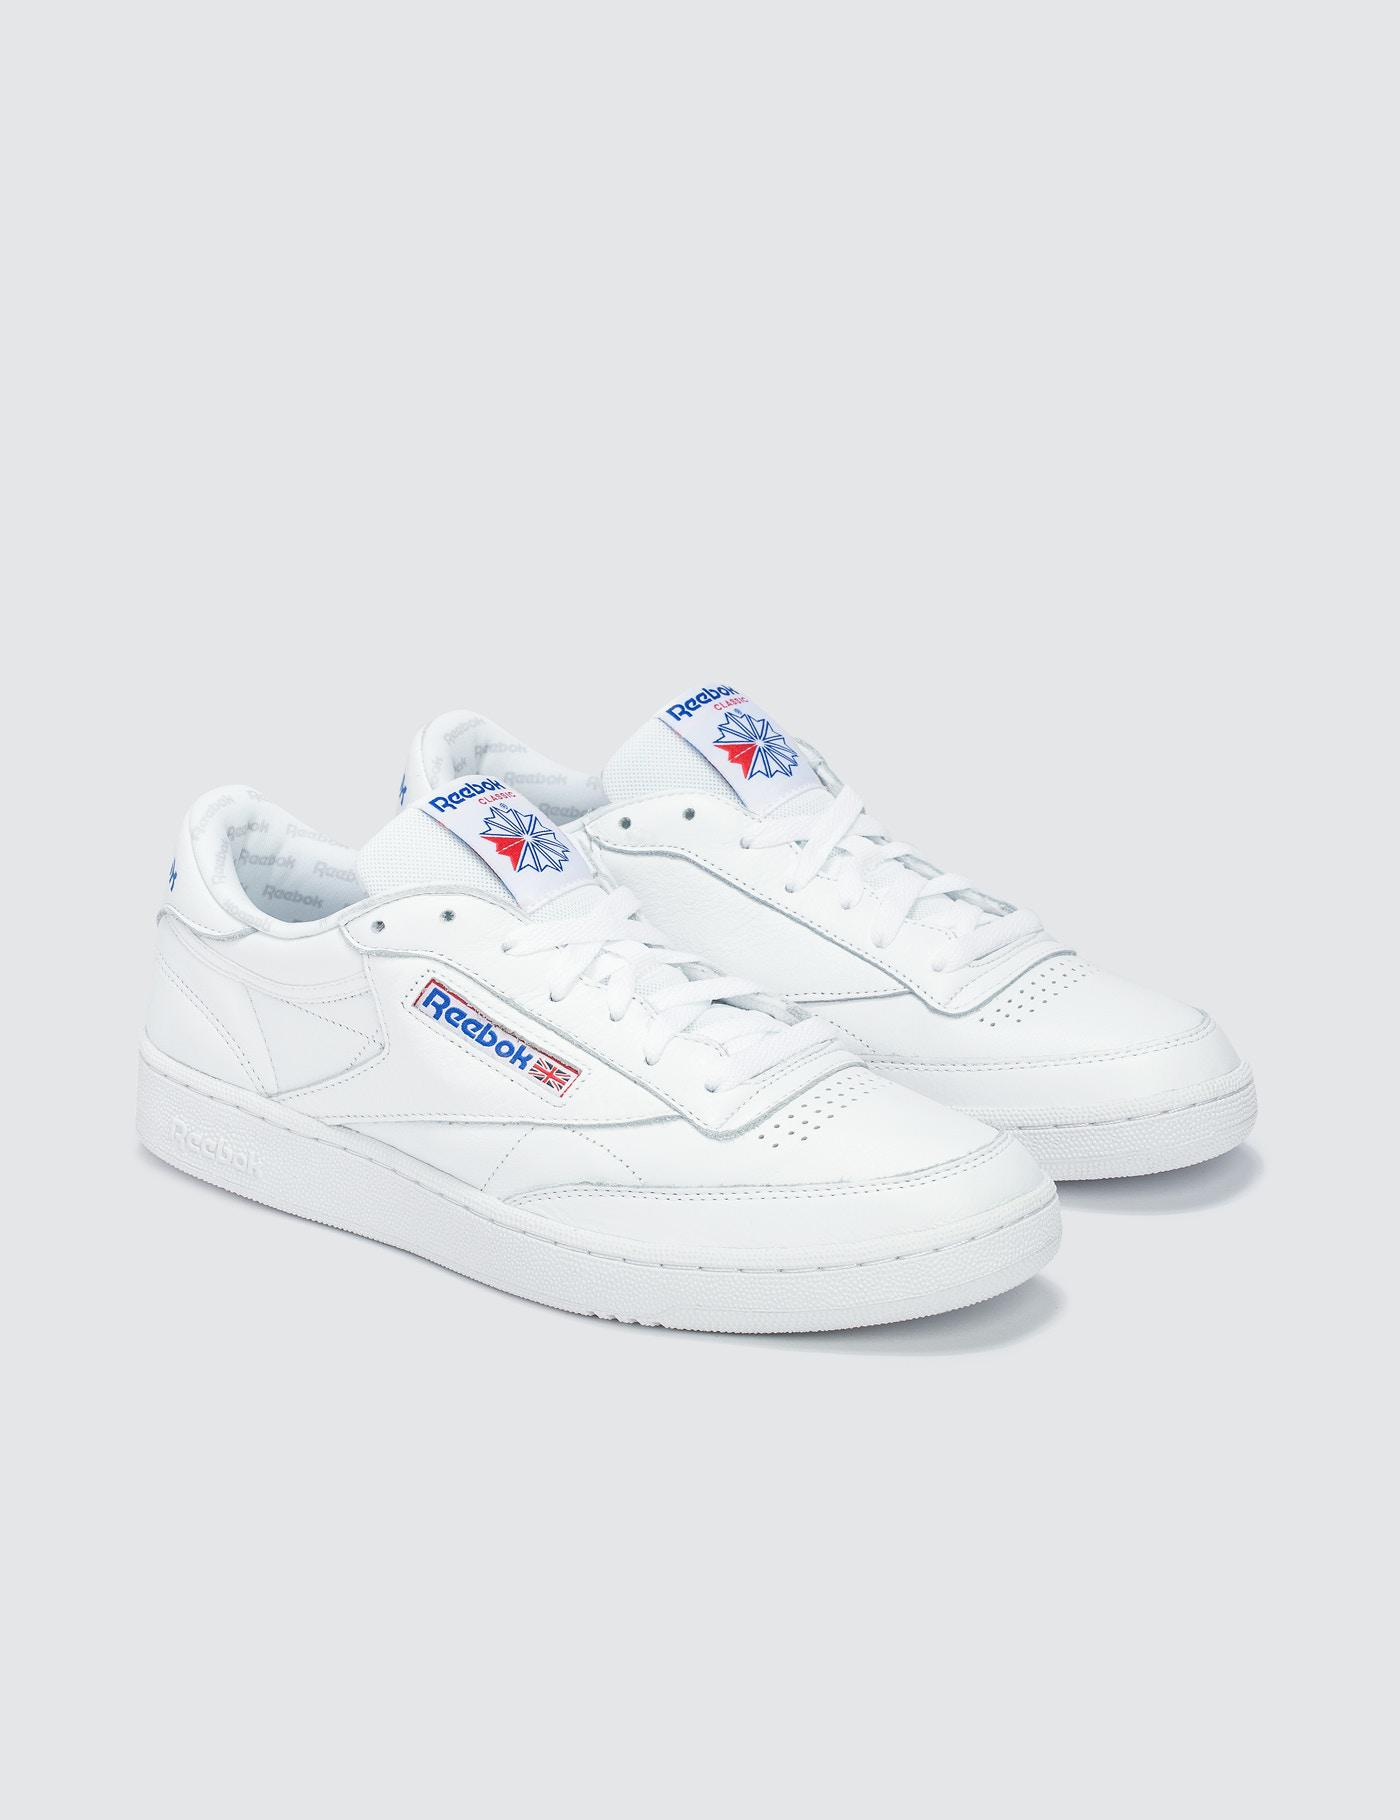 ff1c637d318 Lyst - Reebok Club C 85 So Trainers In White Bs5214 in White for Men